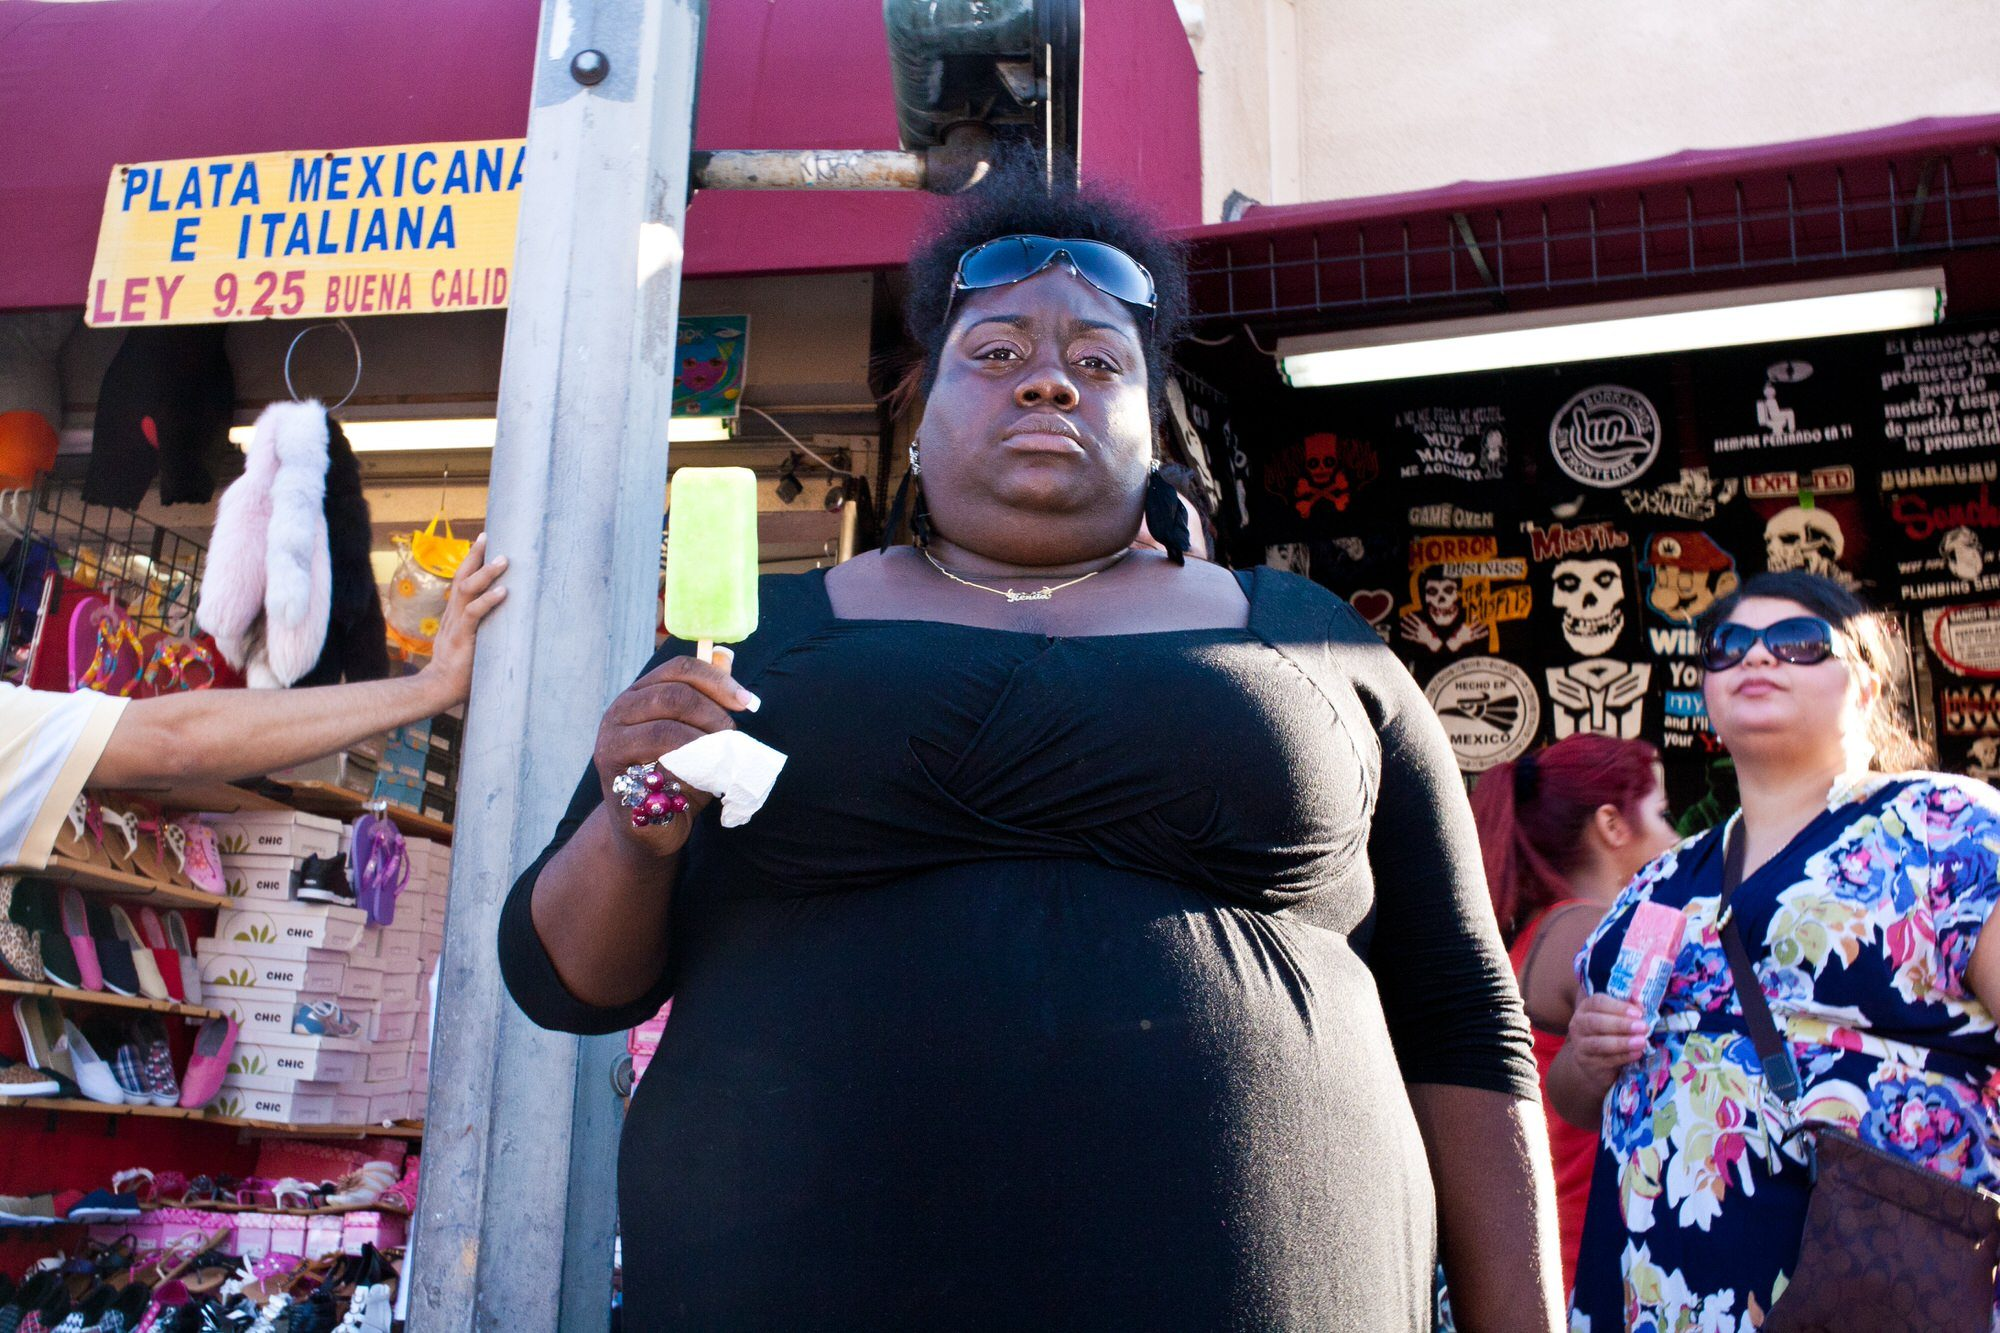 Downtown LA, 2011. Shot on a Canon 5D, 35mm f/2 lens. black woman with popsicle